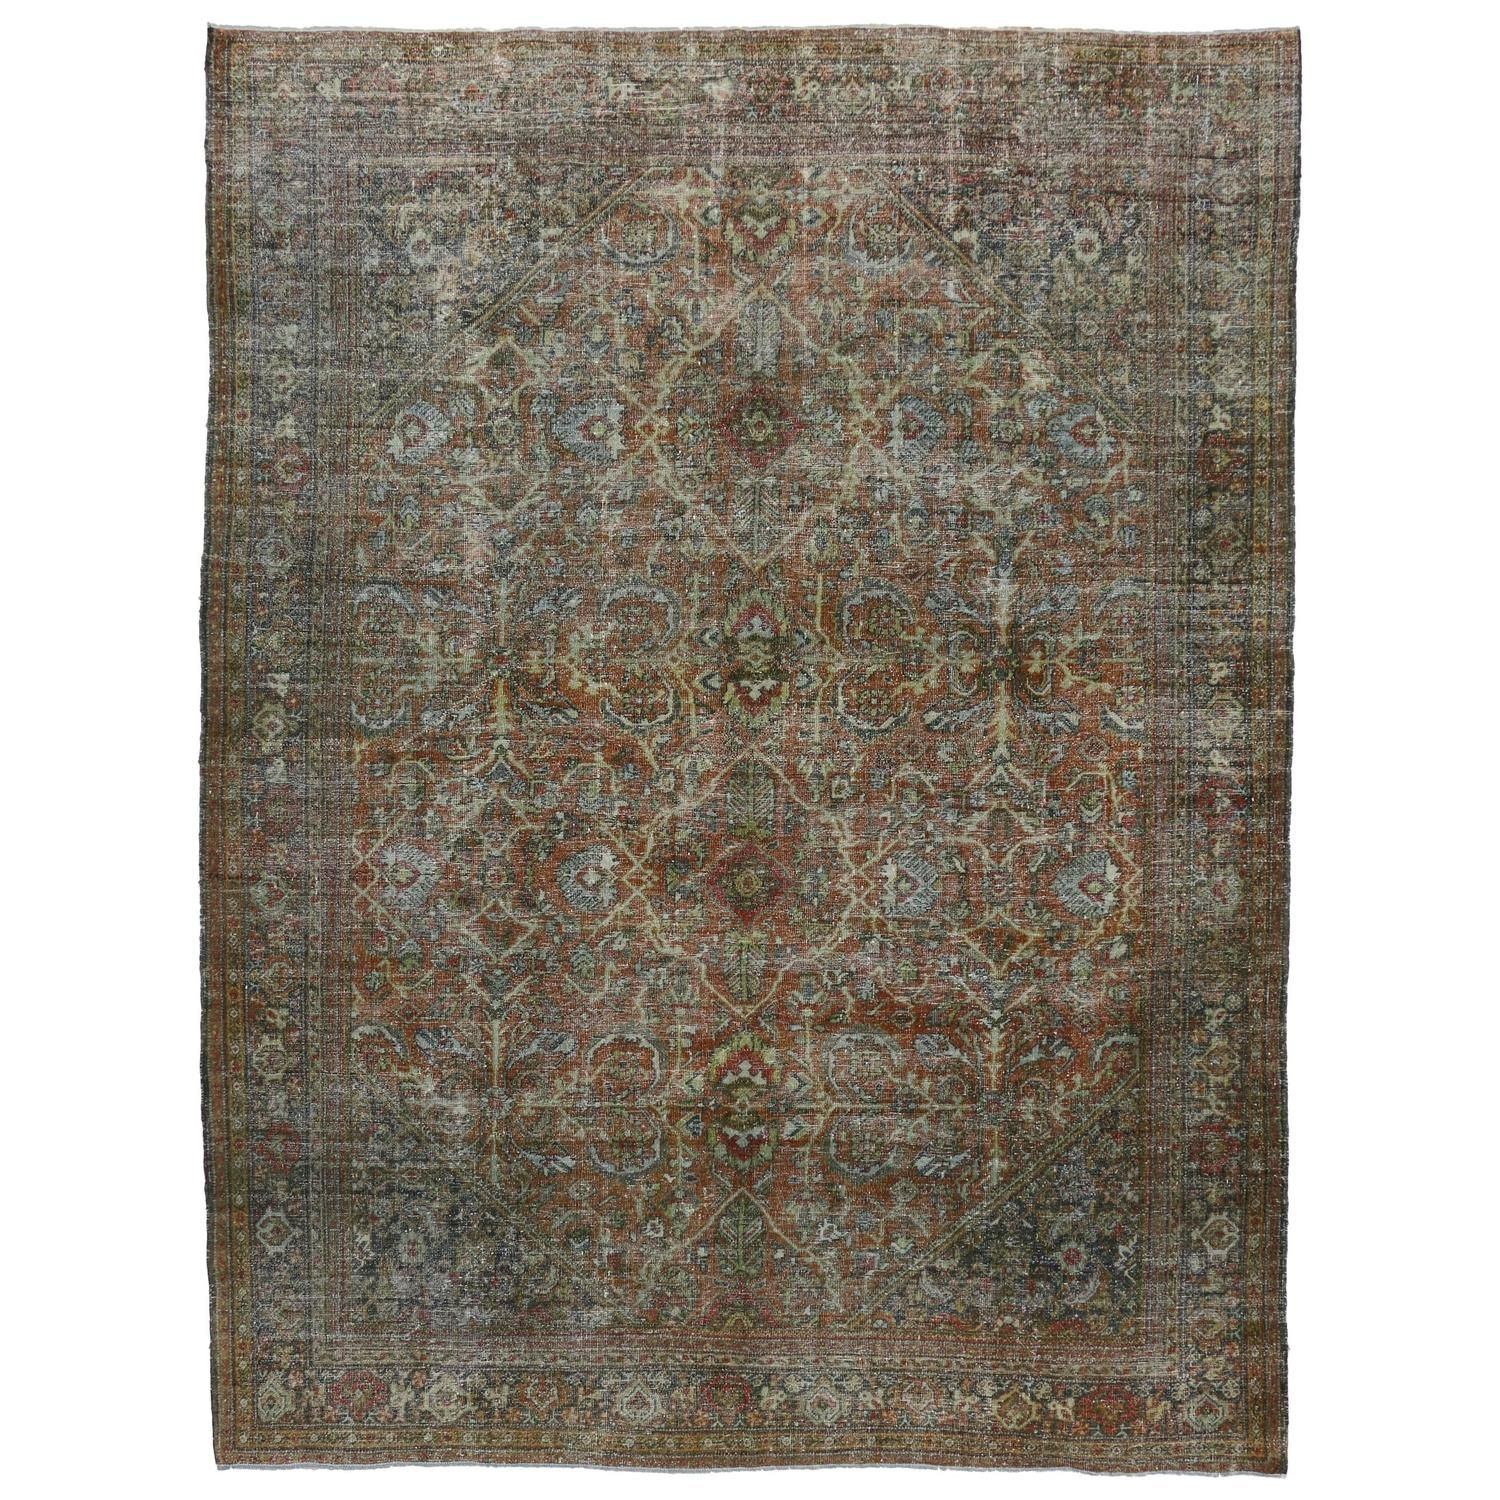 Distressed Antique Persian Mahal Area Rug With Modern Industrial Style Modern Industrial Industrial Style Modern Area Rugs